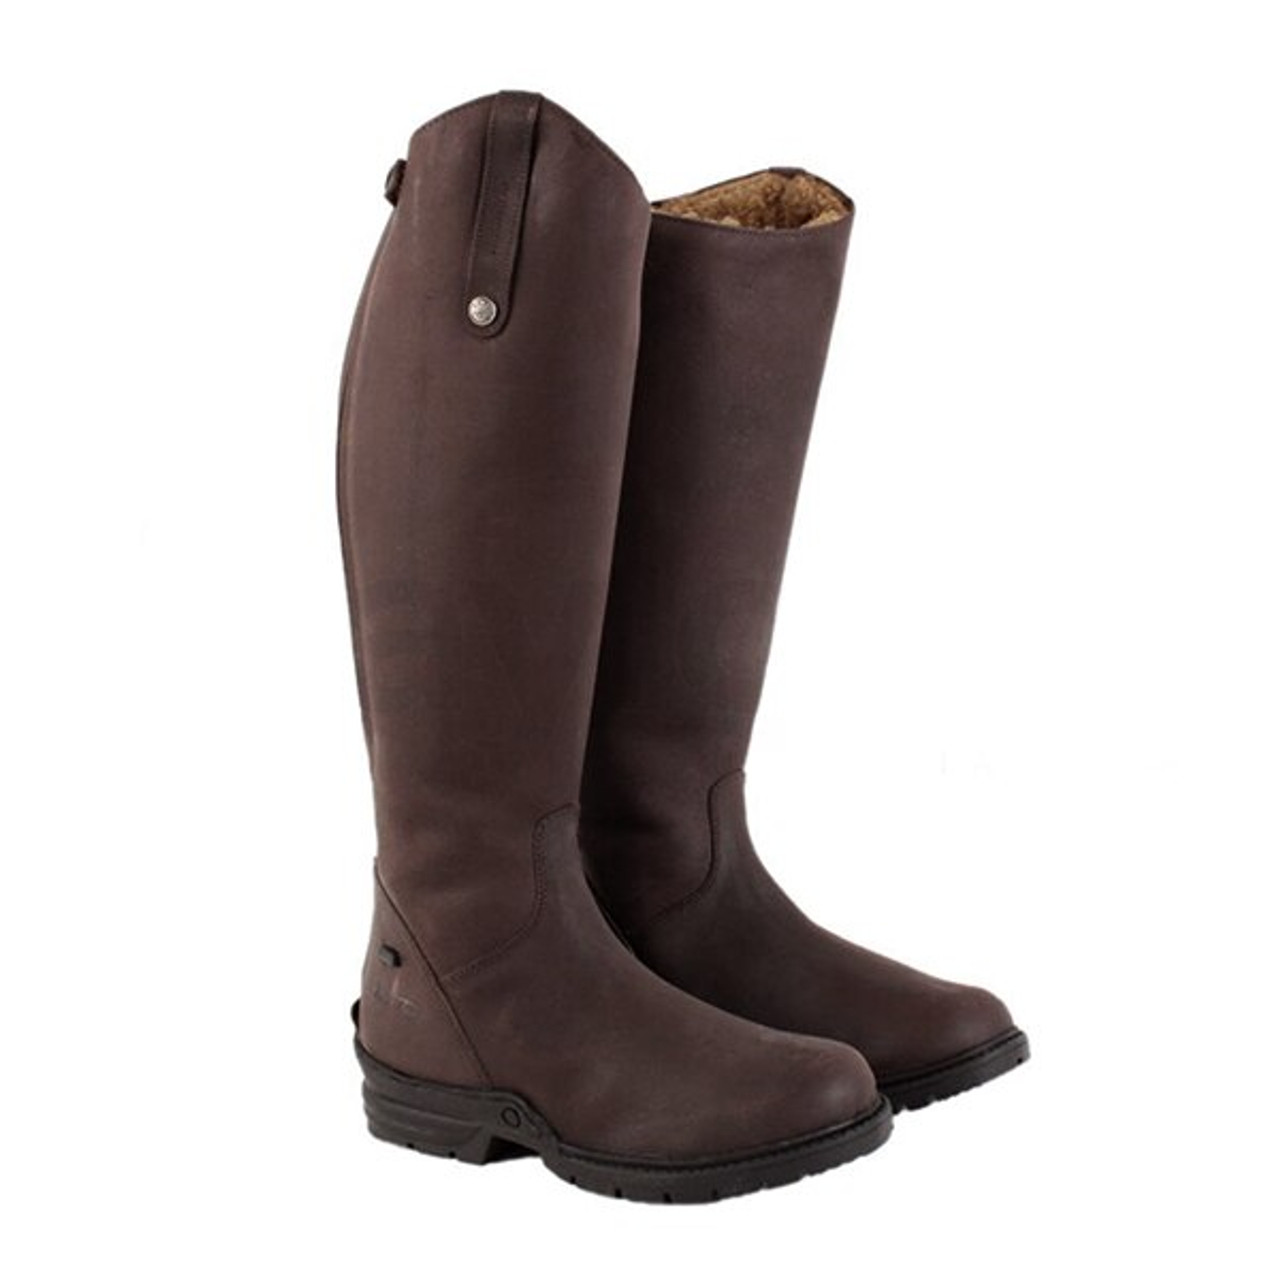 ec0577d0cc6 Mark Todd Fleece Lined Tall Winter Boot - Brown - Wide - HOOVES AND BOONIES